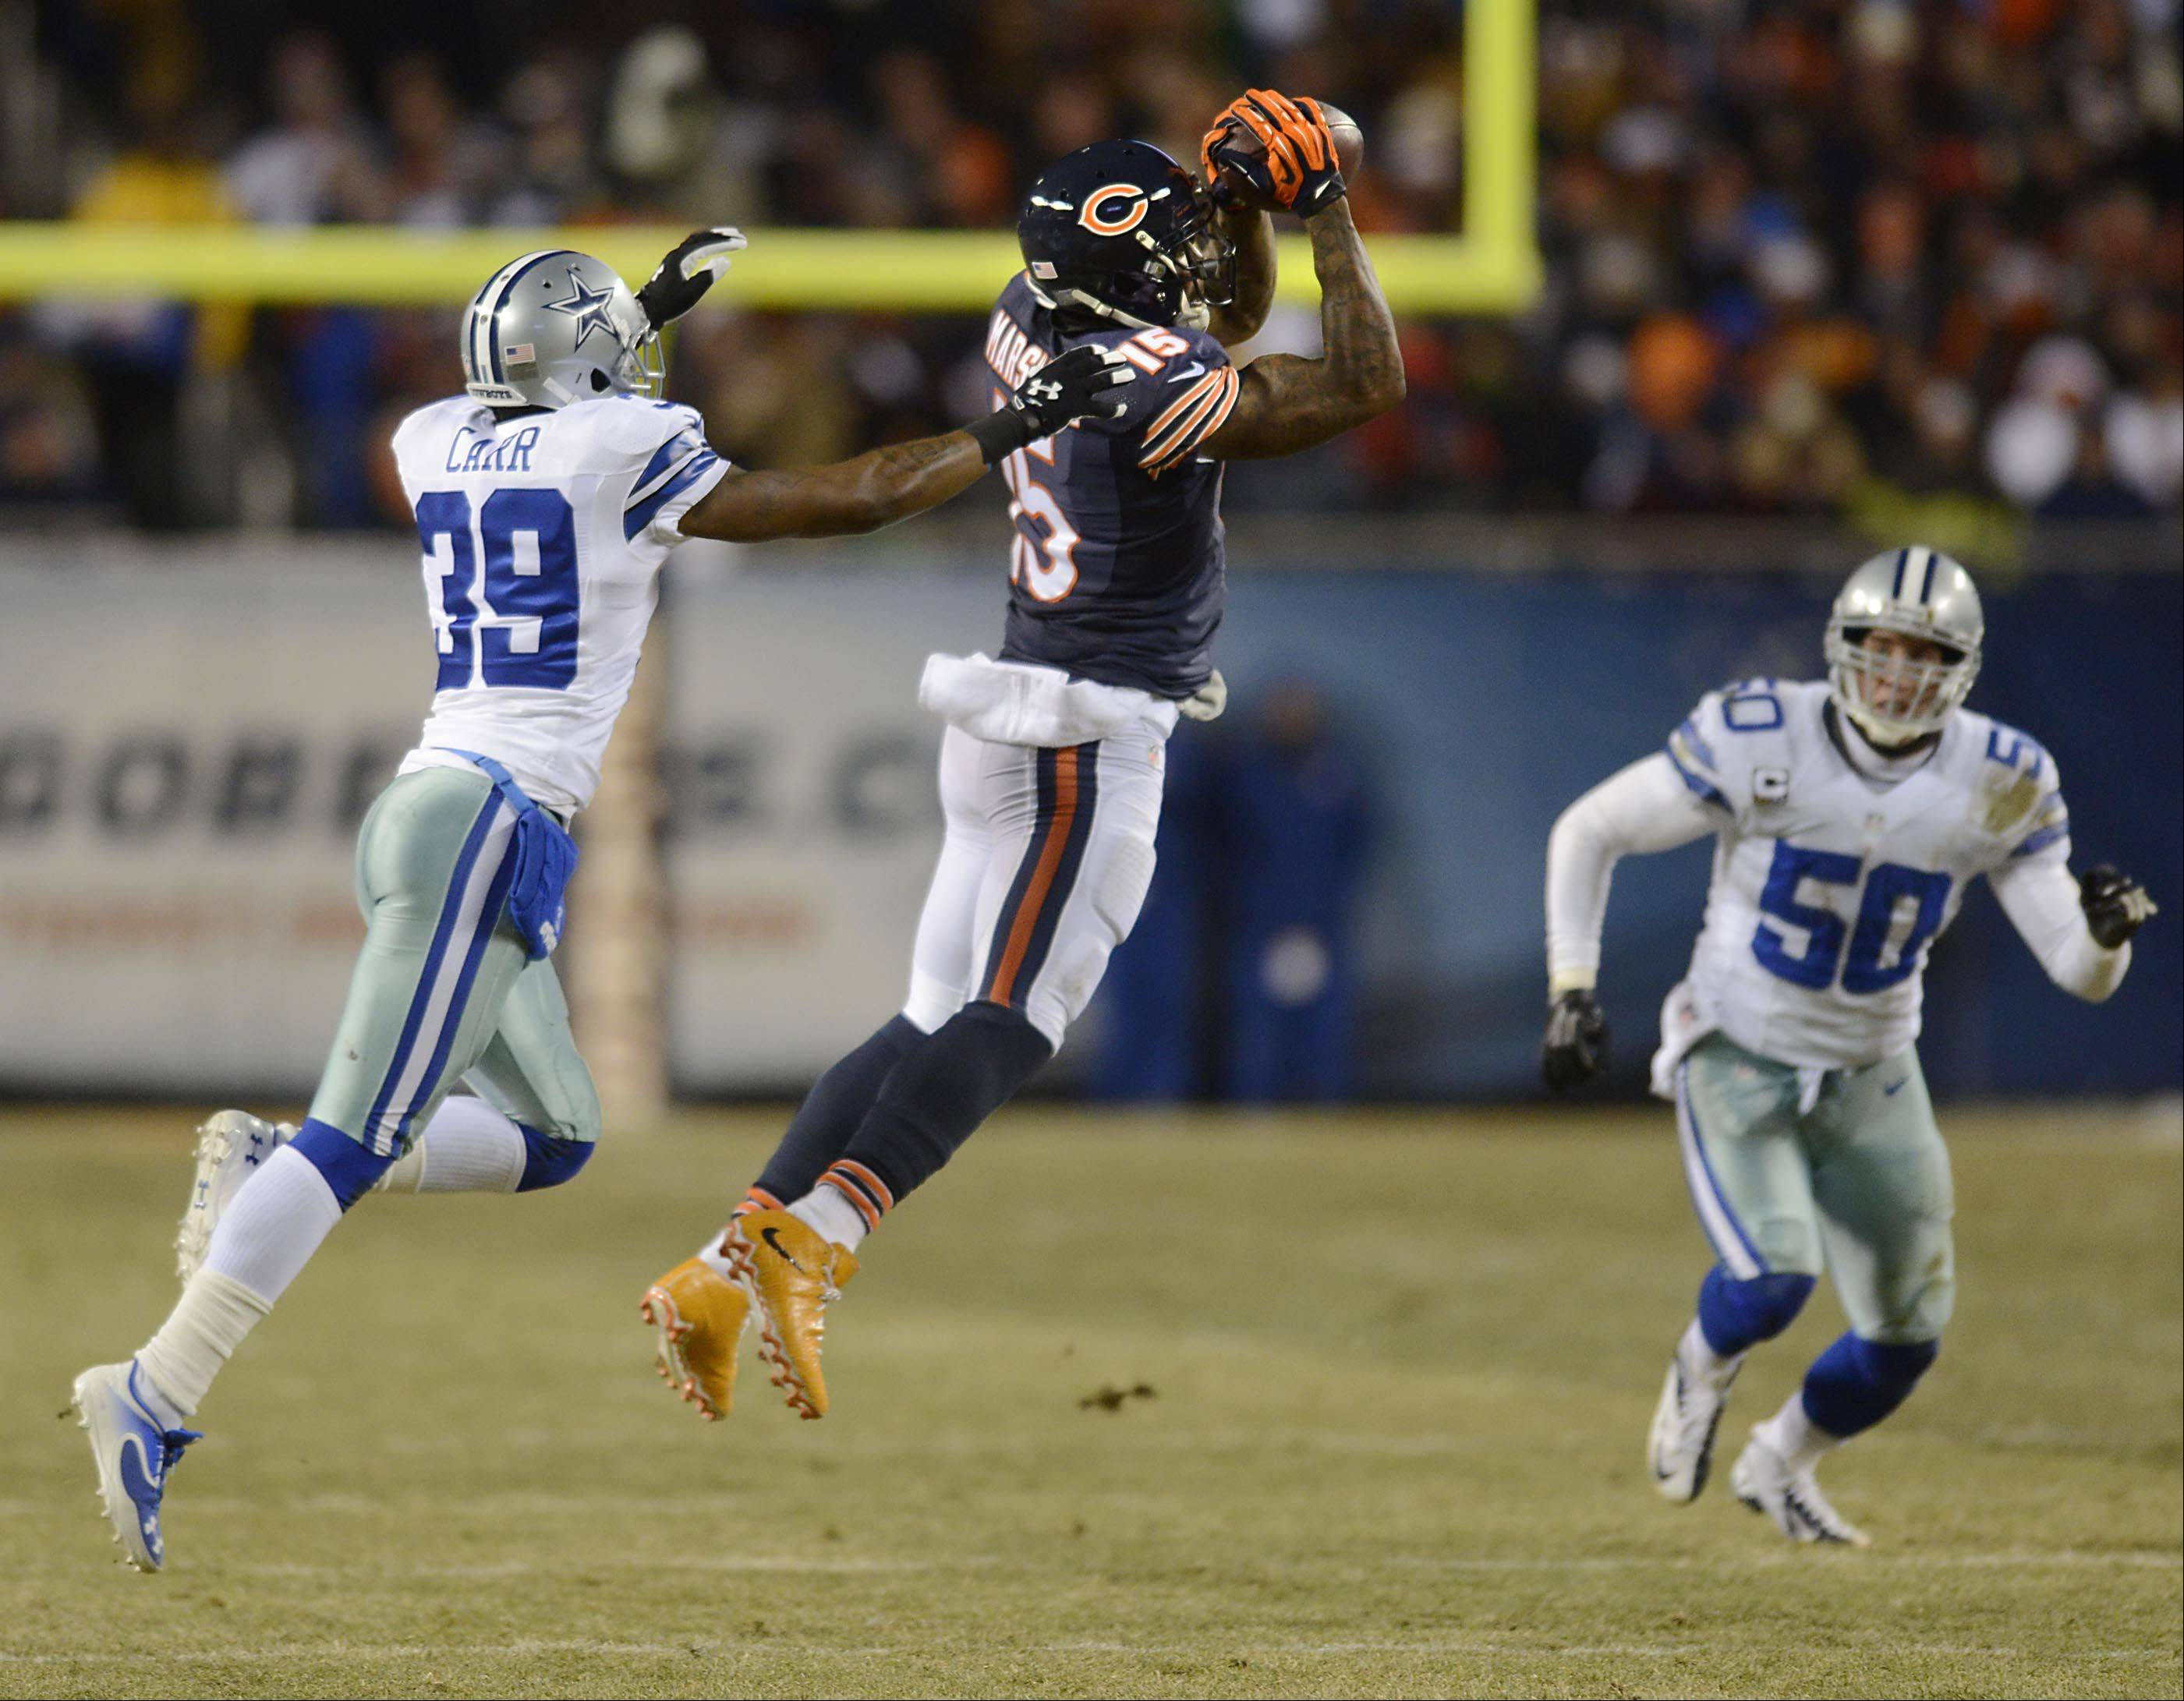 Chicago Bears wide receiver Brandon Marshall makes a catch against the Dallas Cowboys.